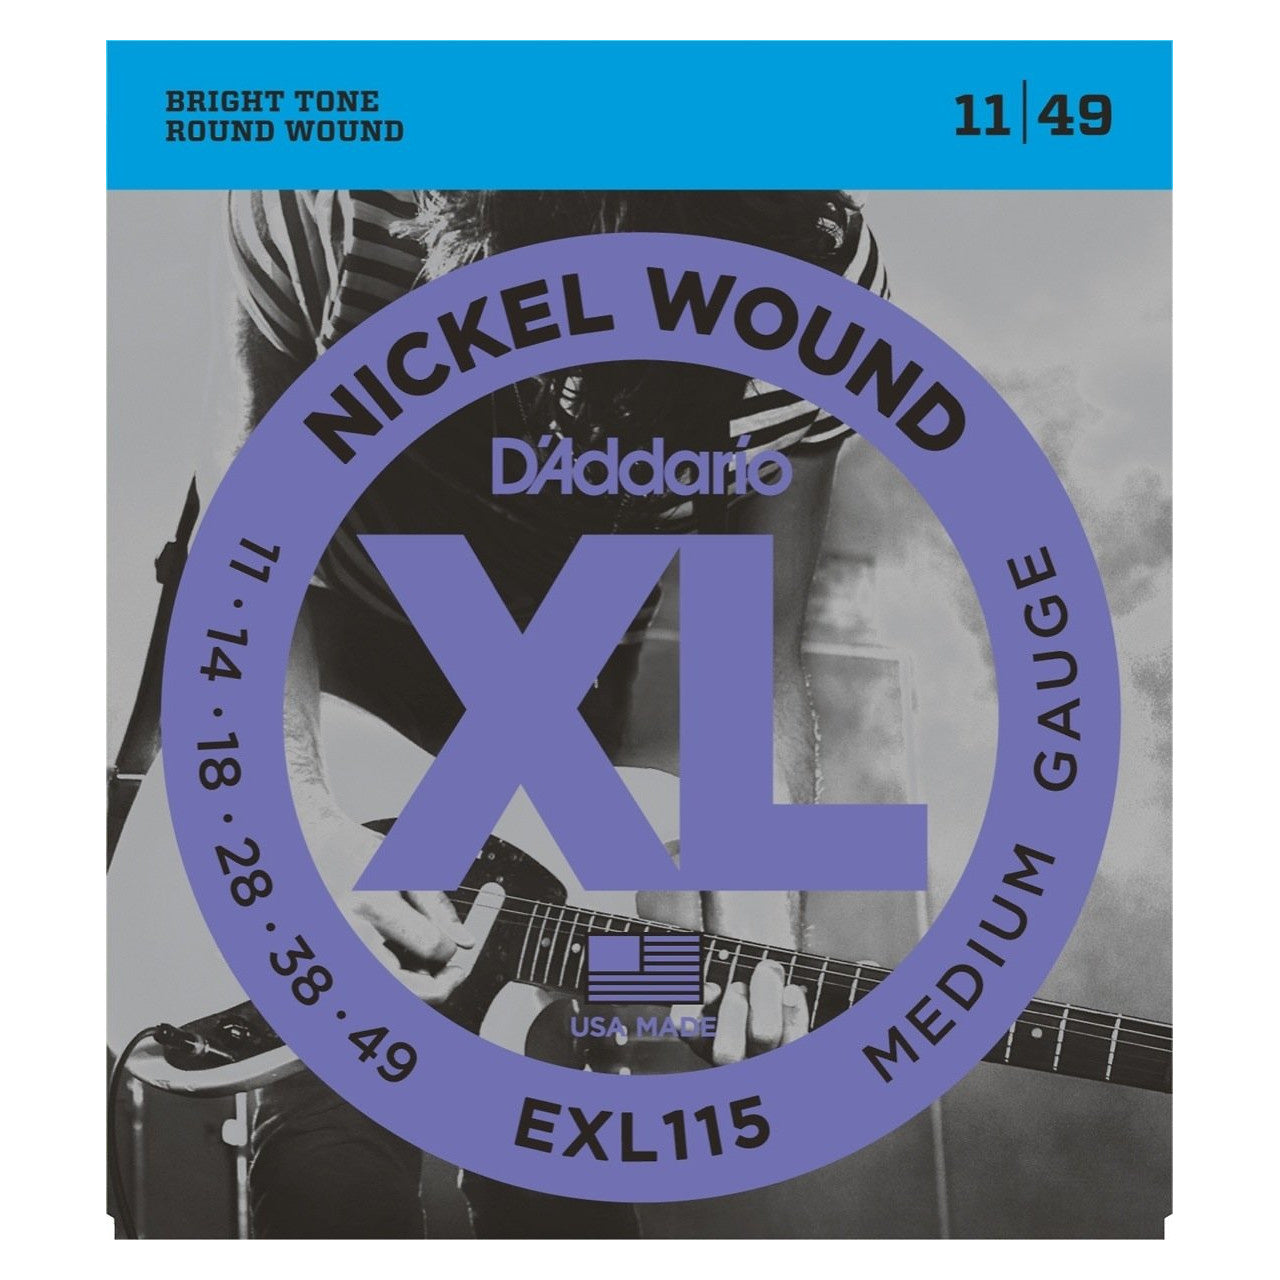 D'Addario EXL115 XL Electric Guitar Strings (Blues/Jazz Rock, 11-49), 3-Pack